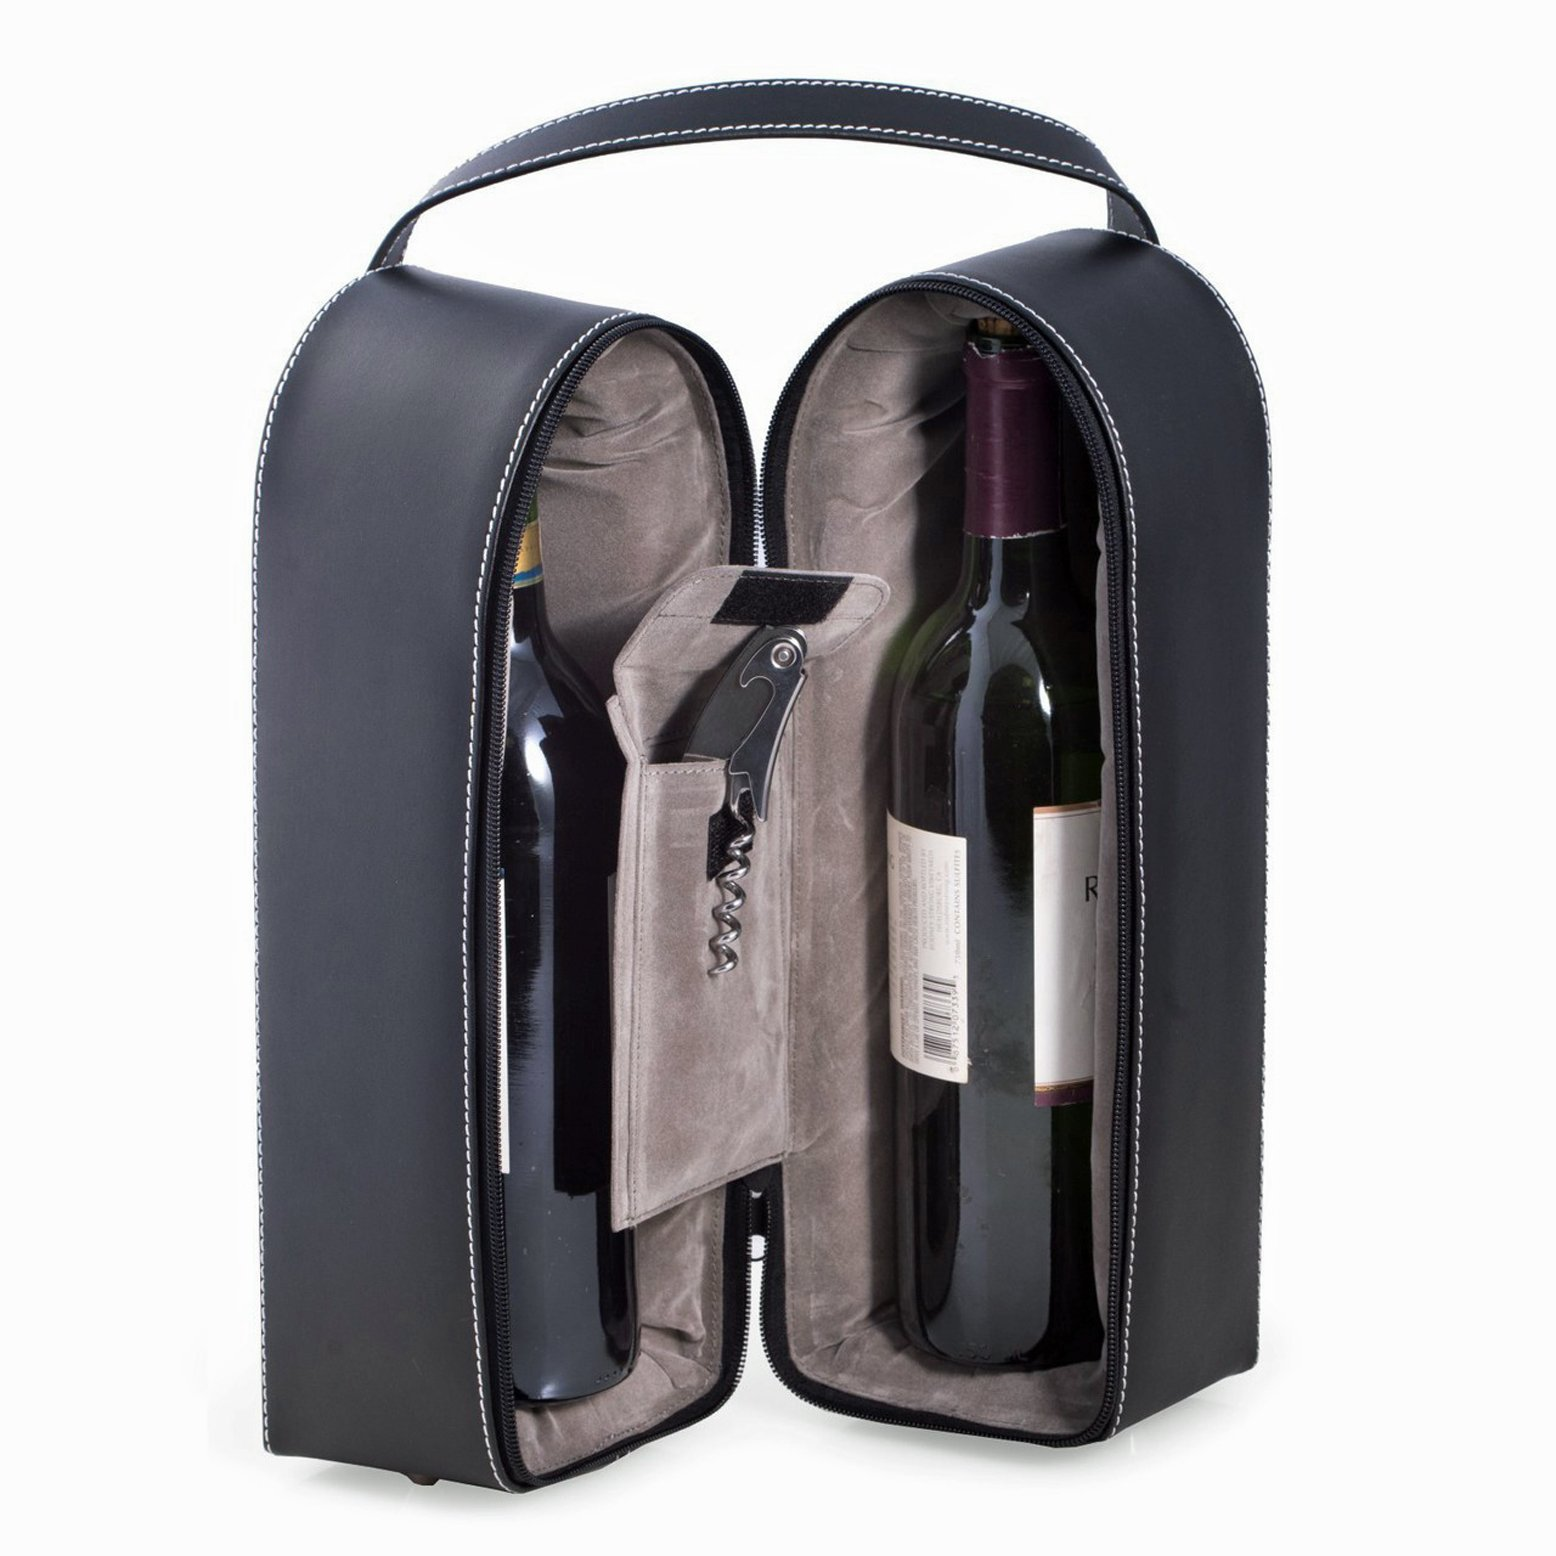 Wine Carrier - Dual Wine Caddy with Bar Tool - Black Leather - Wine Holder